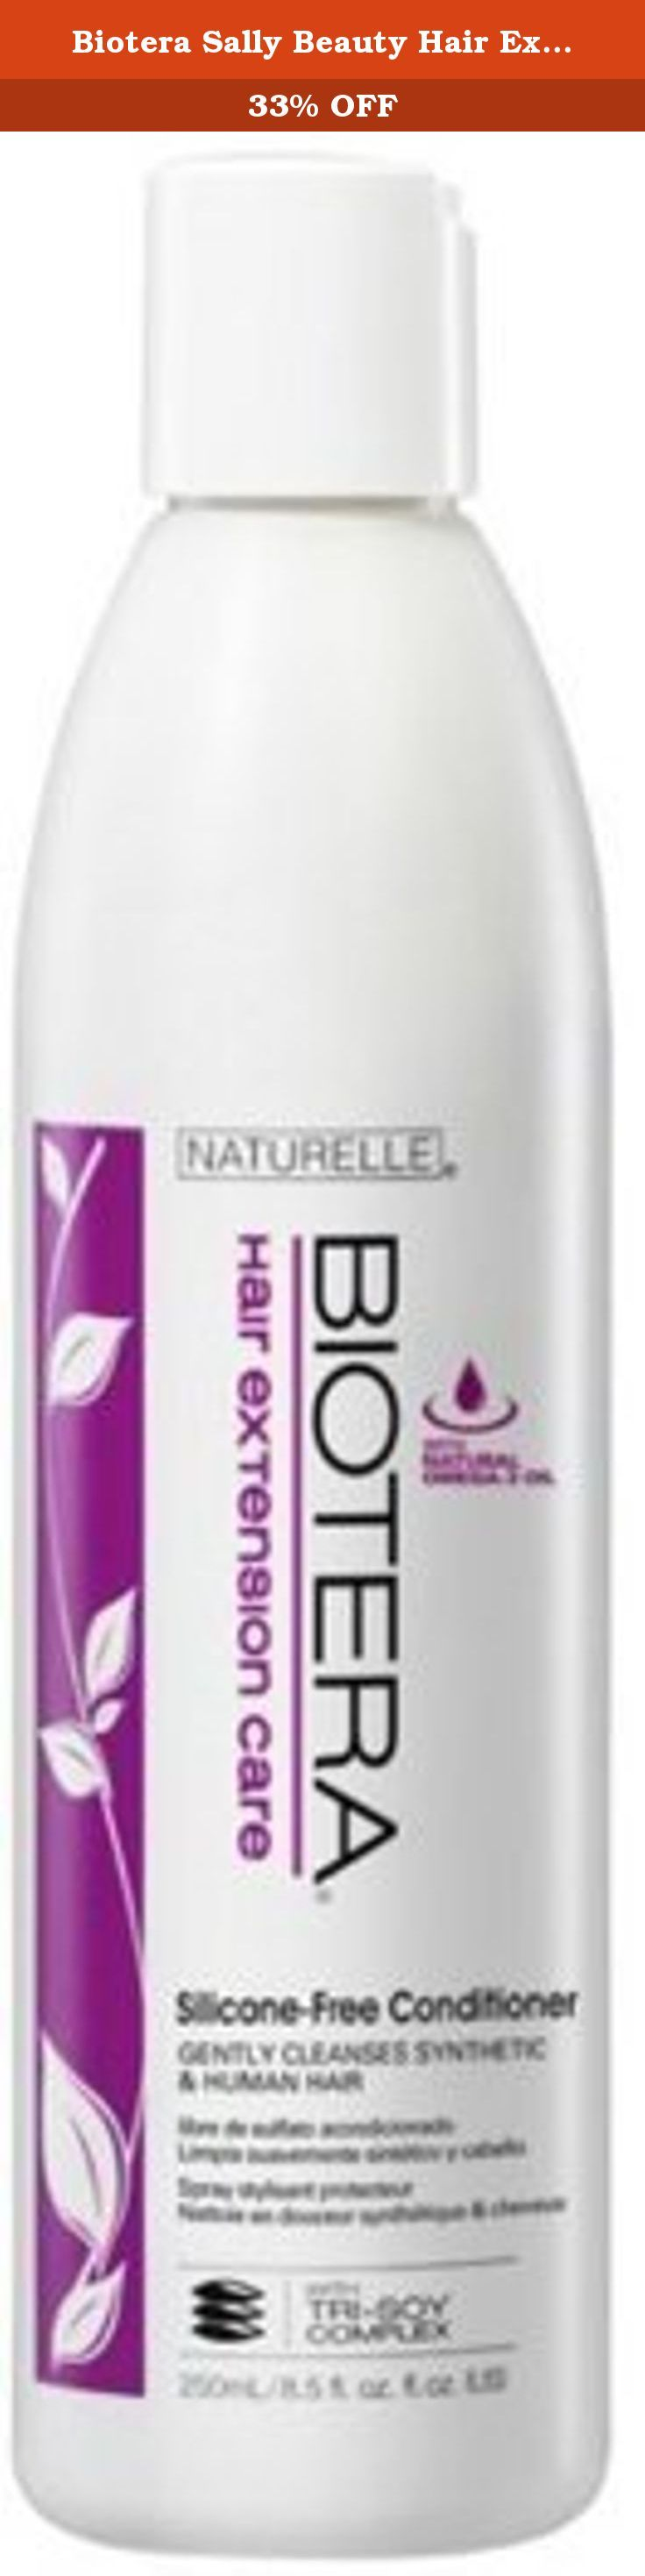 Biotera Sally Beauty Hair Extension Care Conditioner. Biotera, Sally Beauty Hair Extension Care Conditioner gently conditions with natural Omega-3 Oil to help replenish lost moisture and emollients in dry or parched hair extensions.